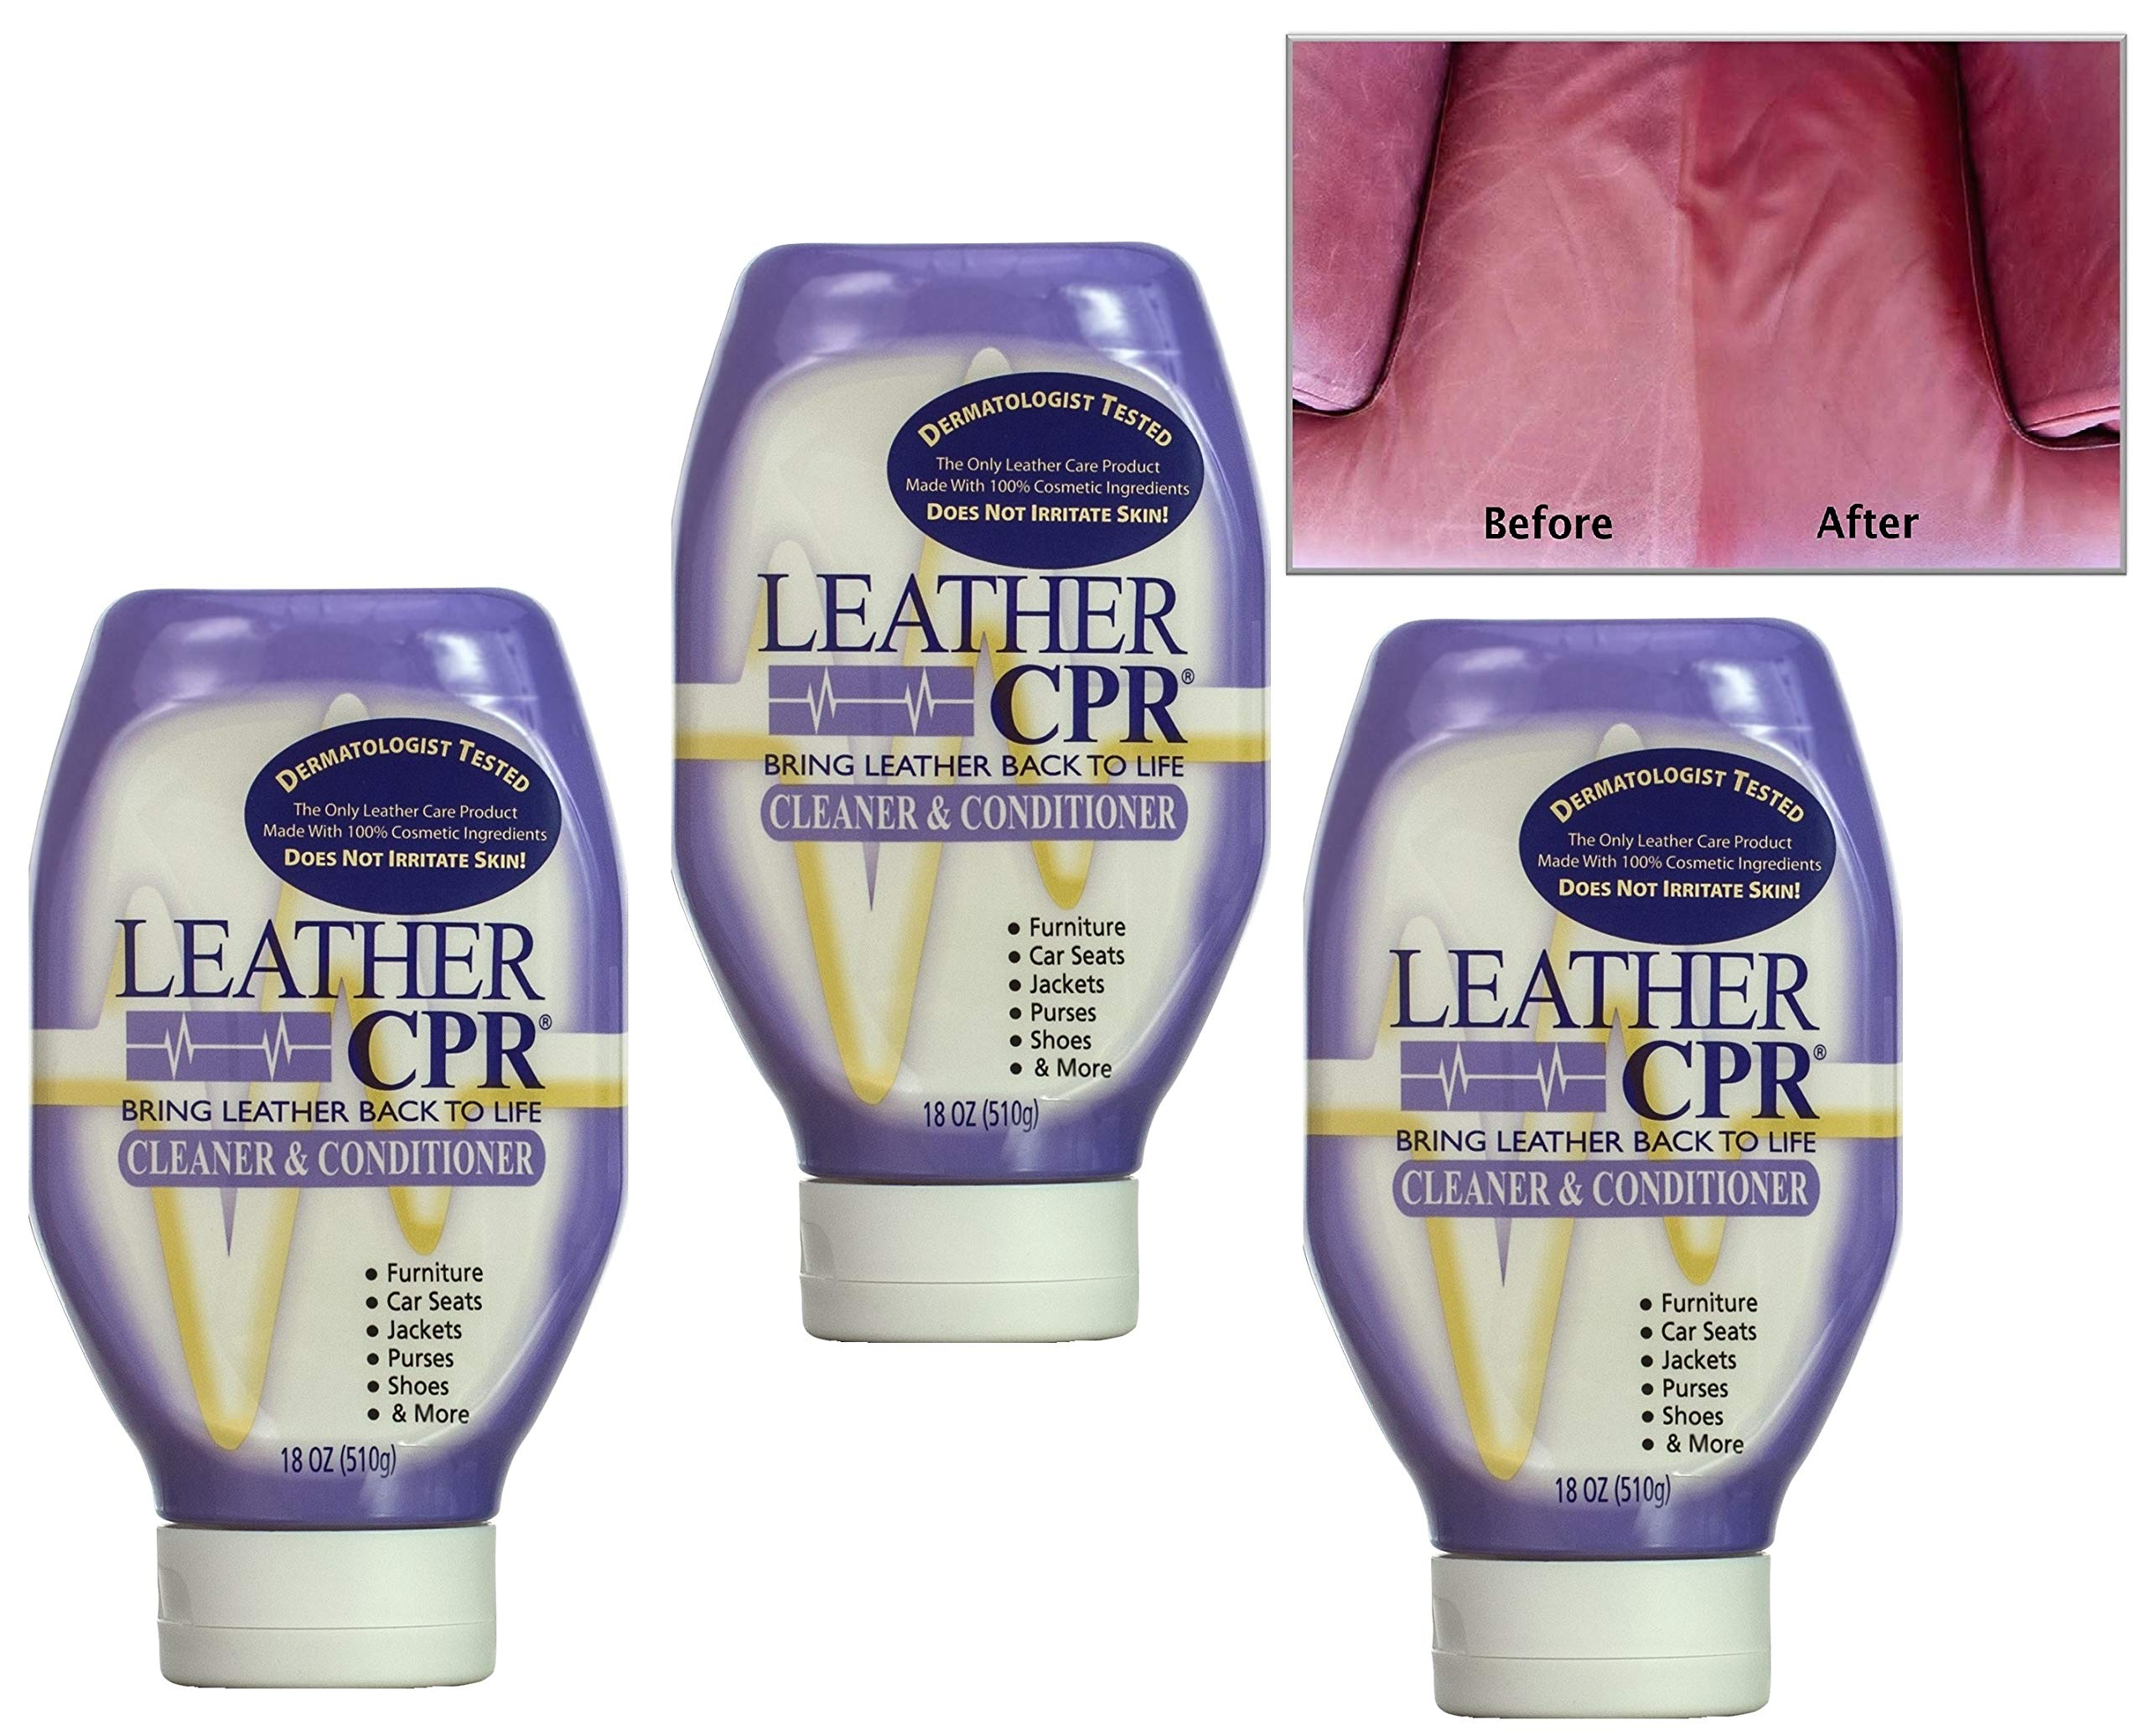 Leather CPR Cleaner & Conditioner by CPR Cleaning Products (Value 3-Pack of 18oz Bottles) Restores & Protects Leather Furniture, Purses, Car Seats, Jackets & More by CPR Cleaning Products